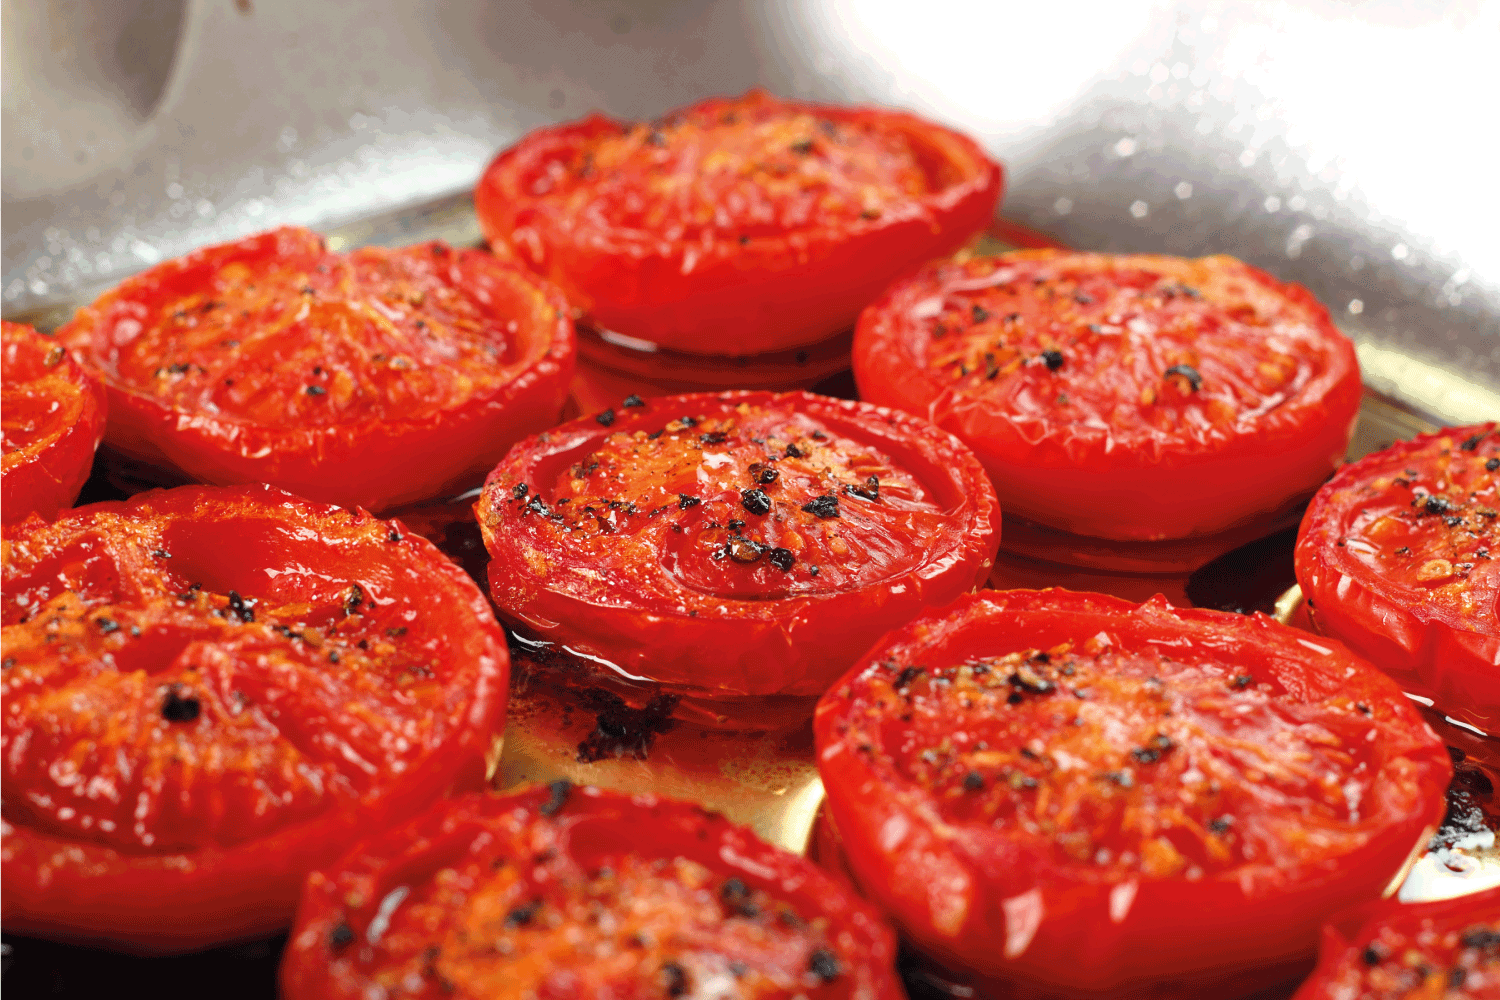 Slow Roasted Tomatoes in a stainless steel pan with olive oil